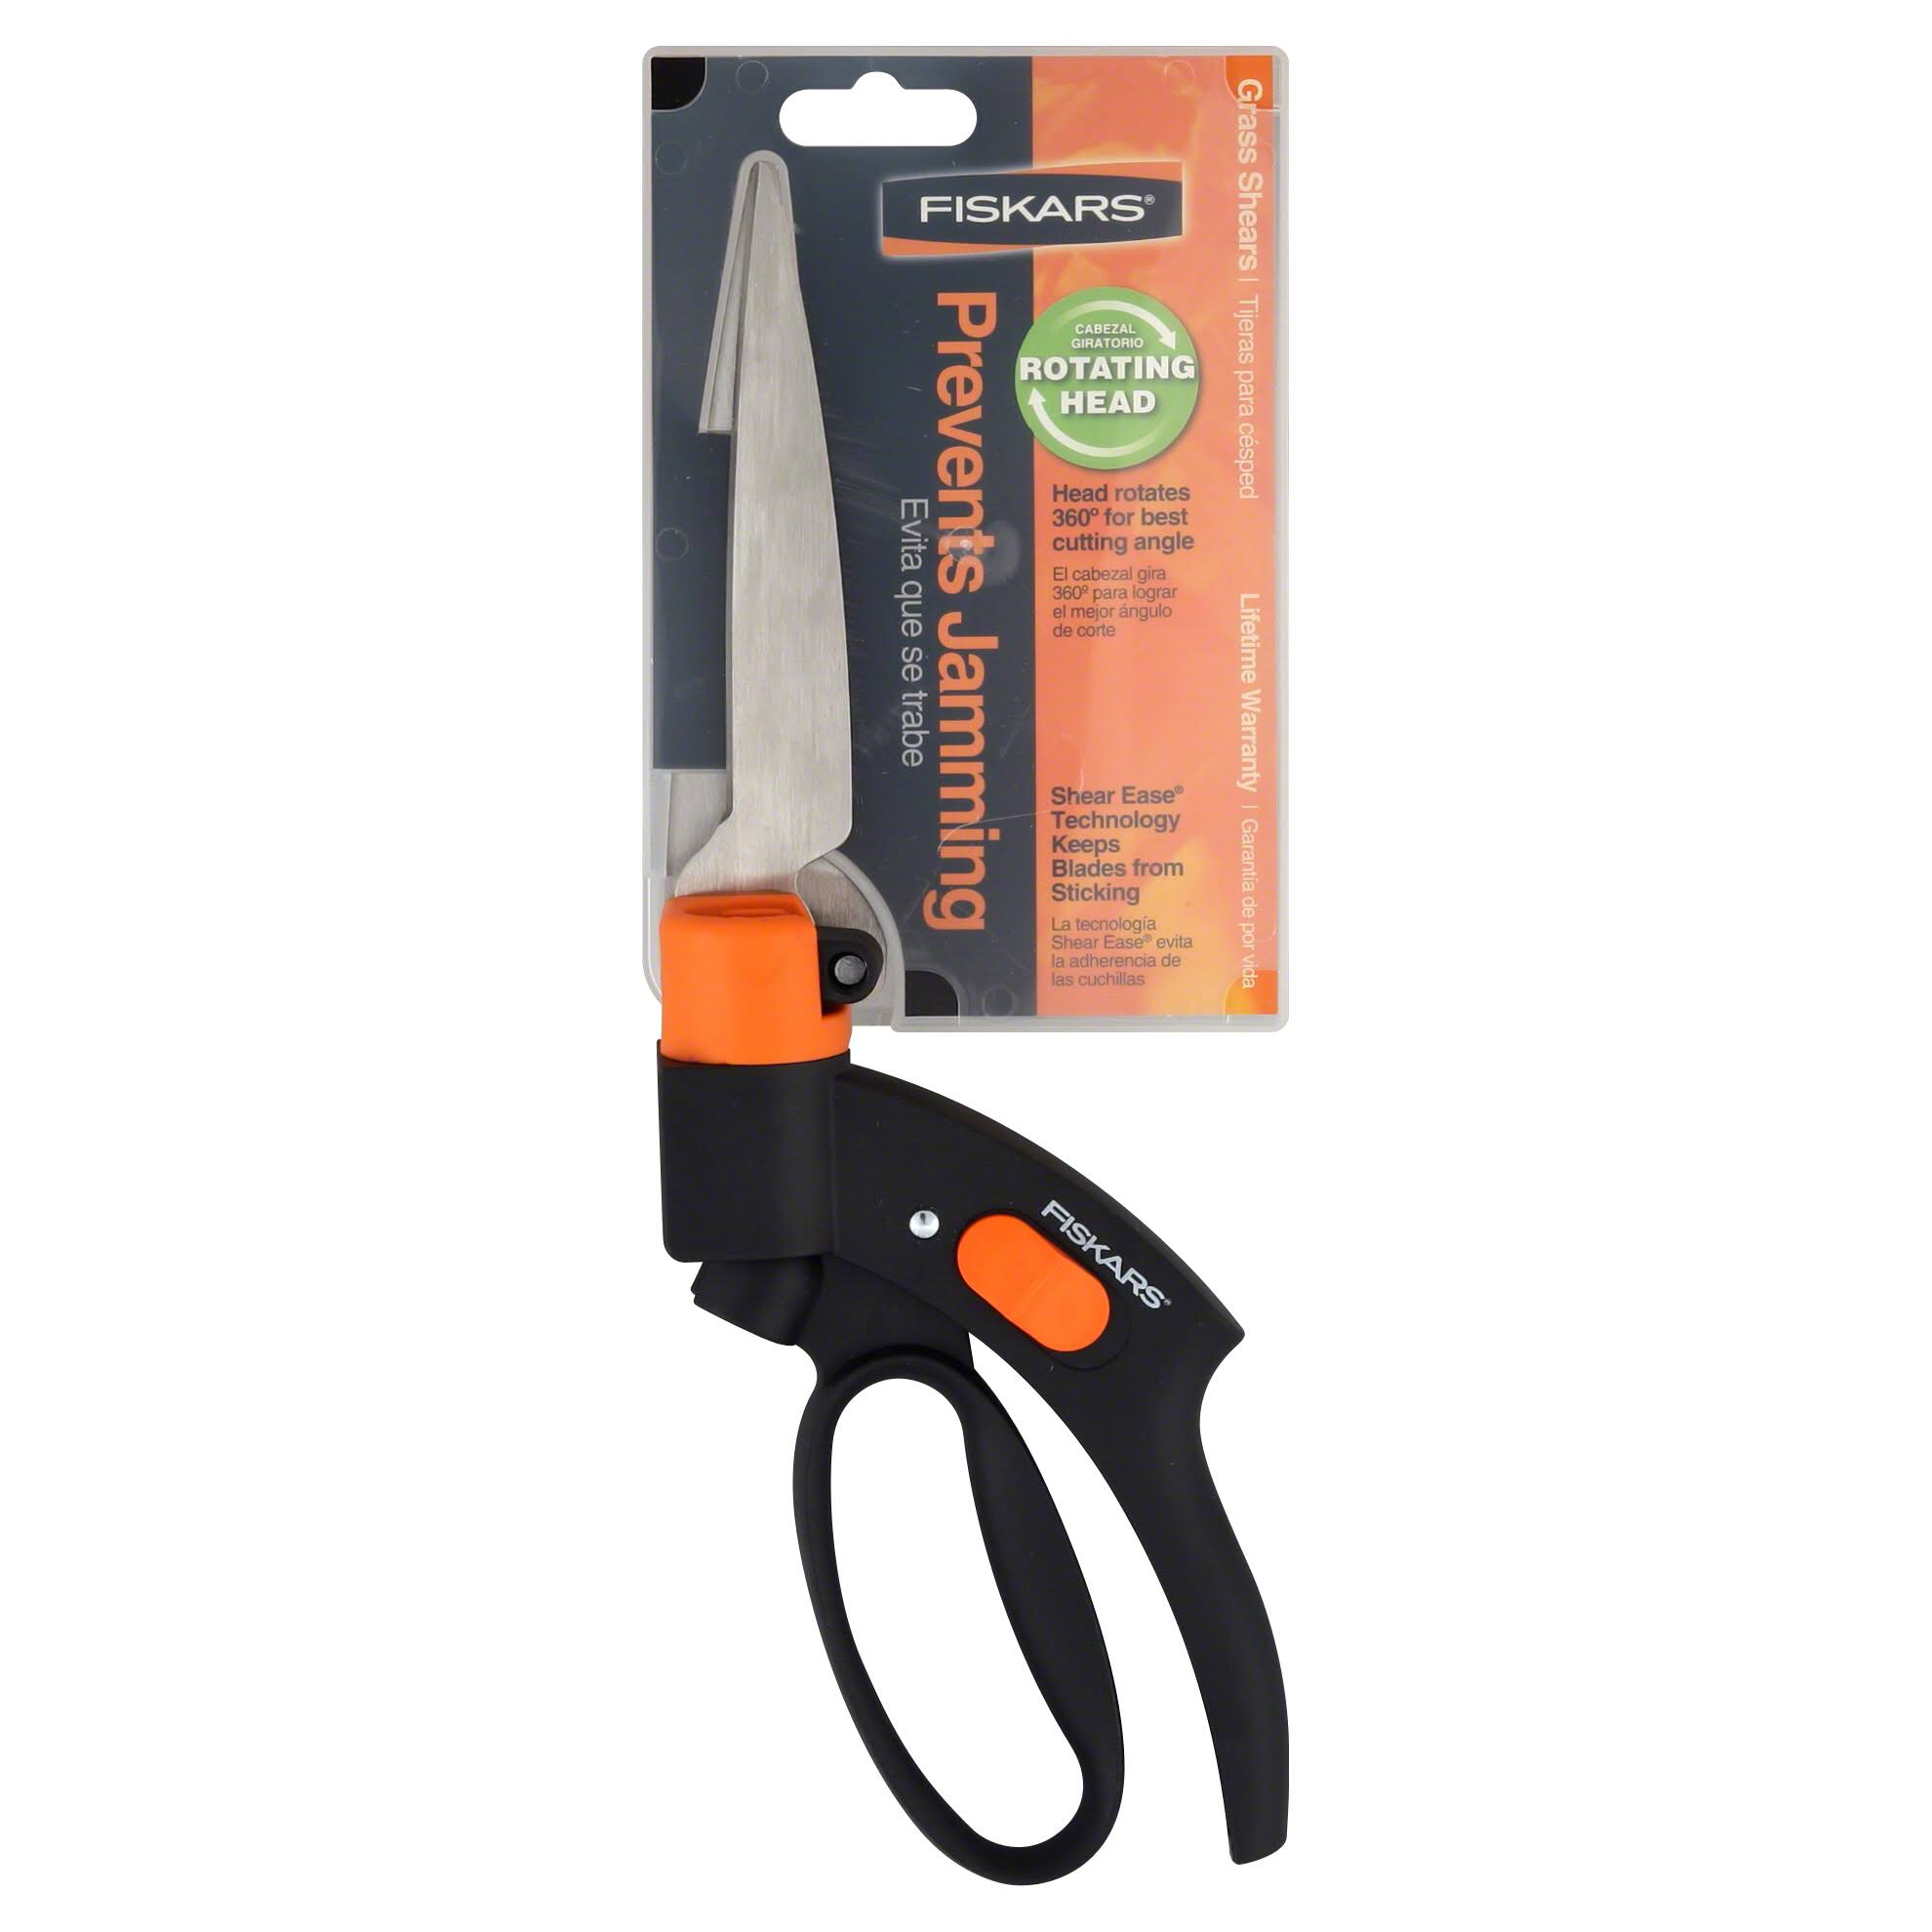 Fiskars Grass Shears - Stainless Steel, Steel Precision Ground Length